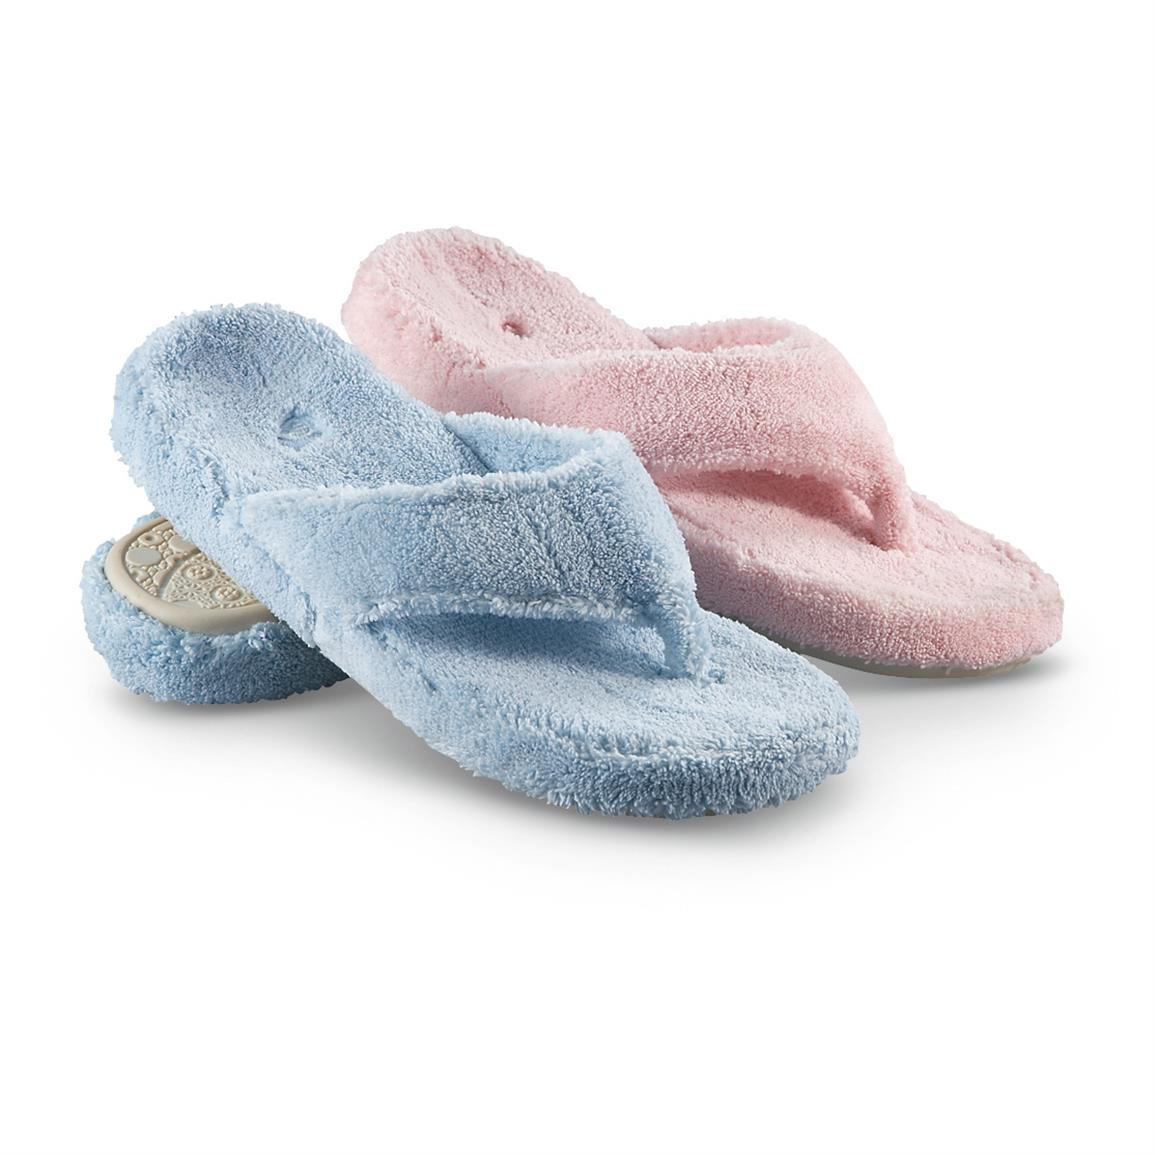 Acorn Women's Spa Thong Slippers, Powder 